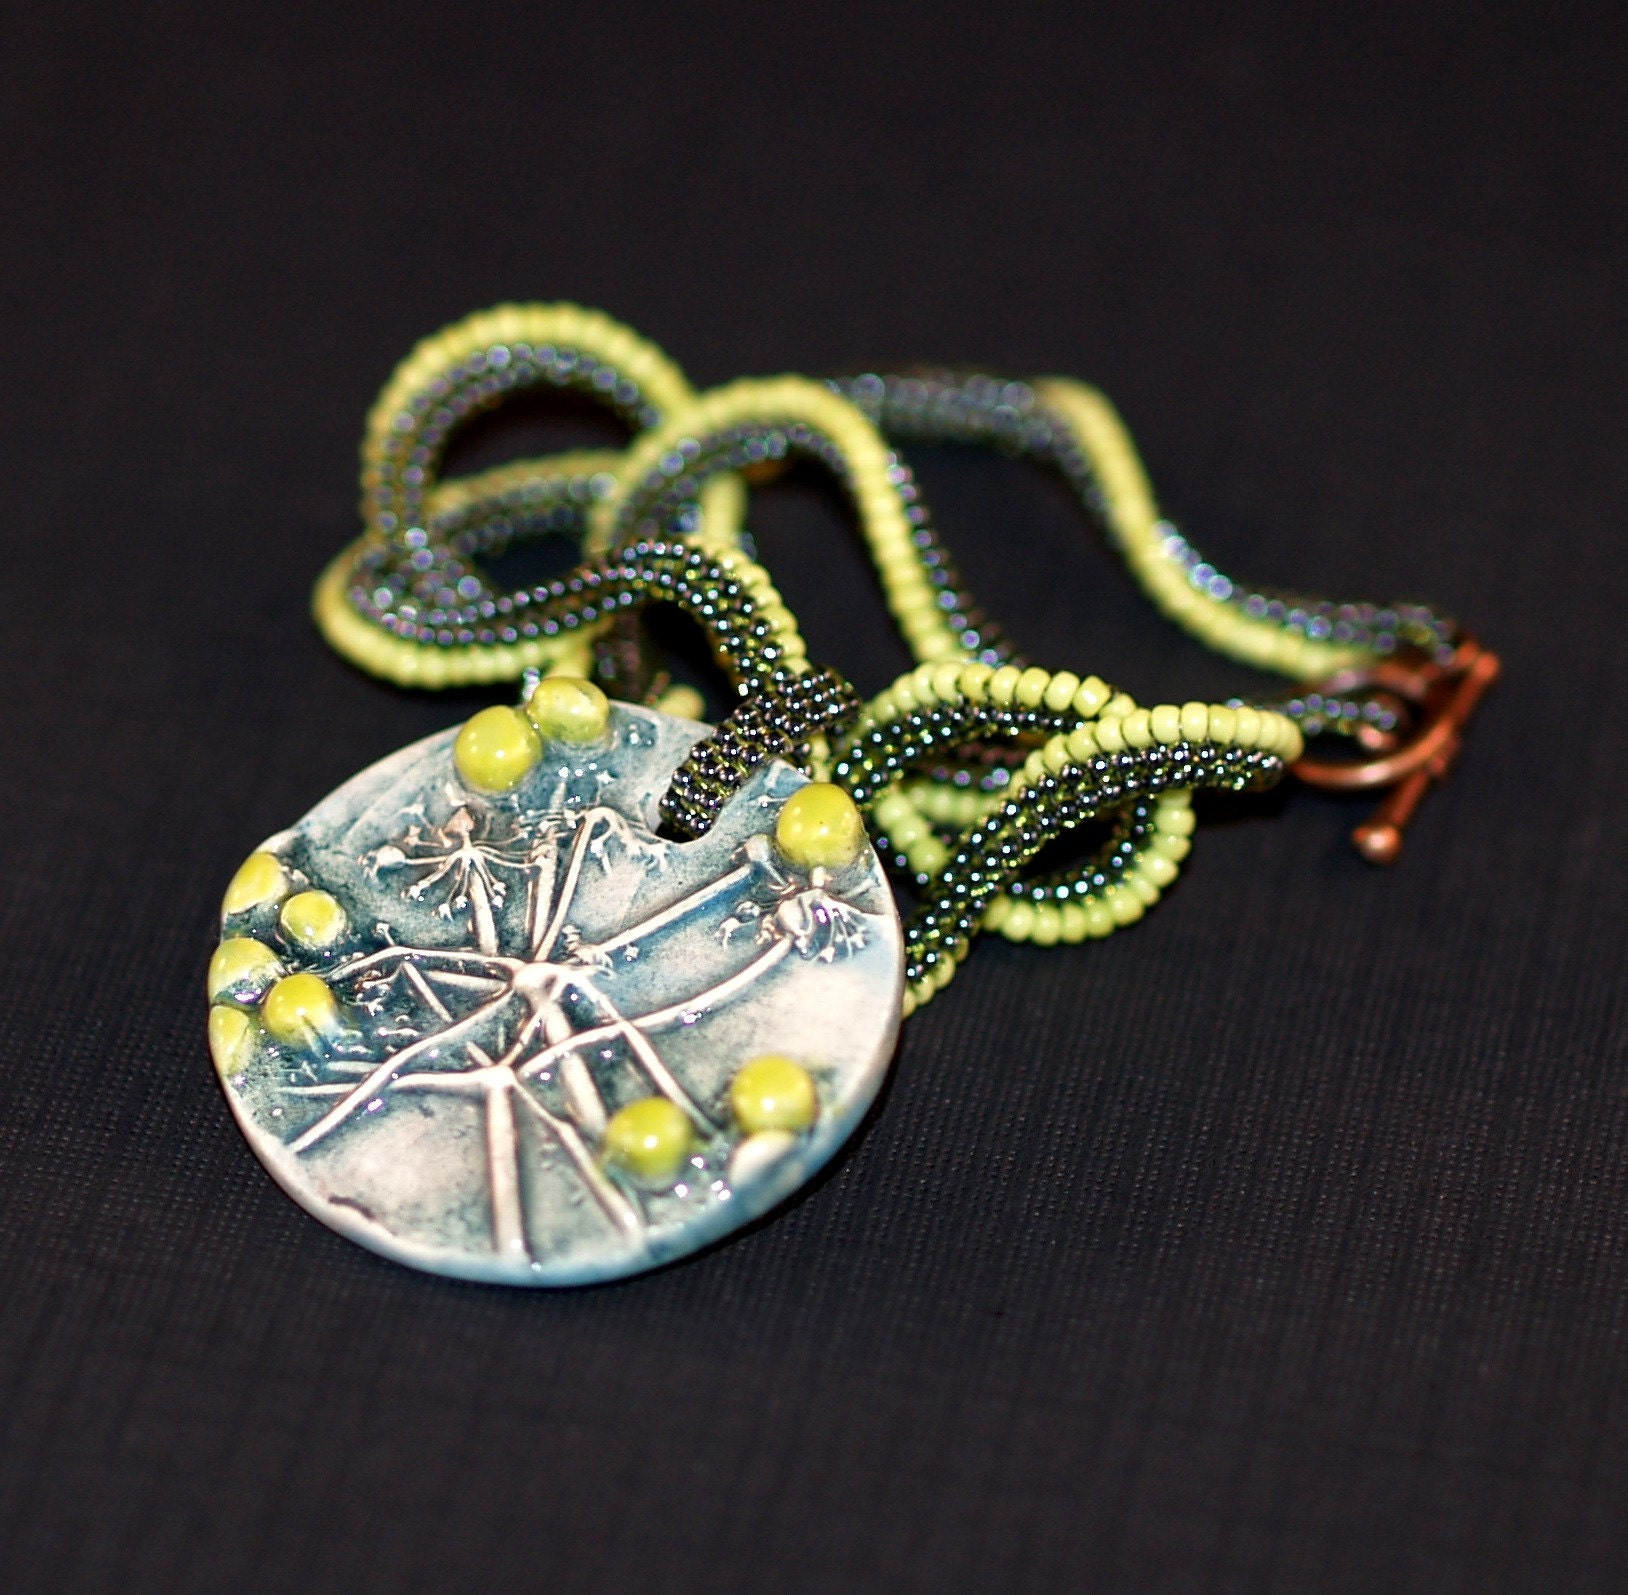 Cilantro Lime Twist - Artisan Ceramic Pendant on Ndebele Rope Necklace (3192)